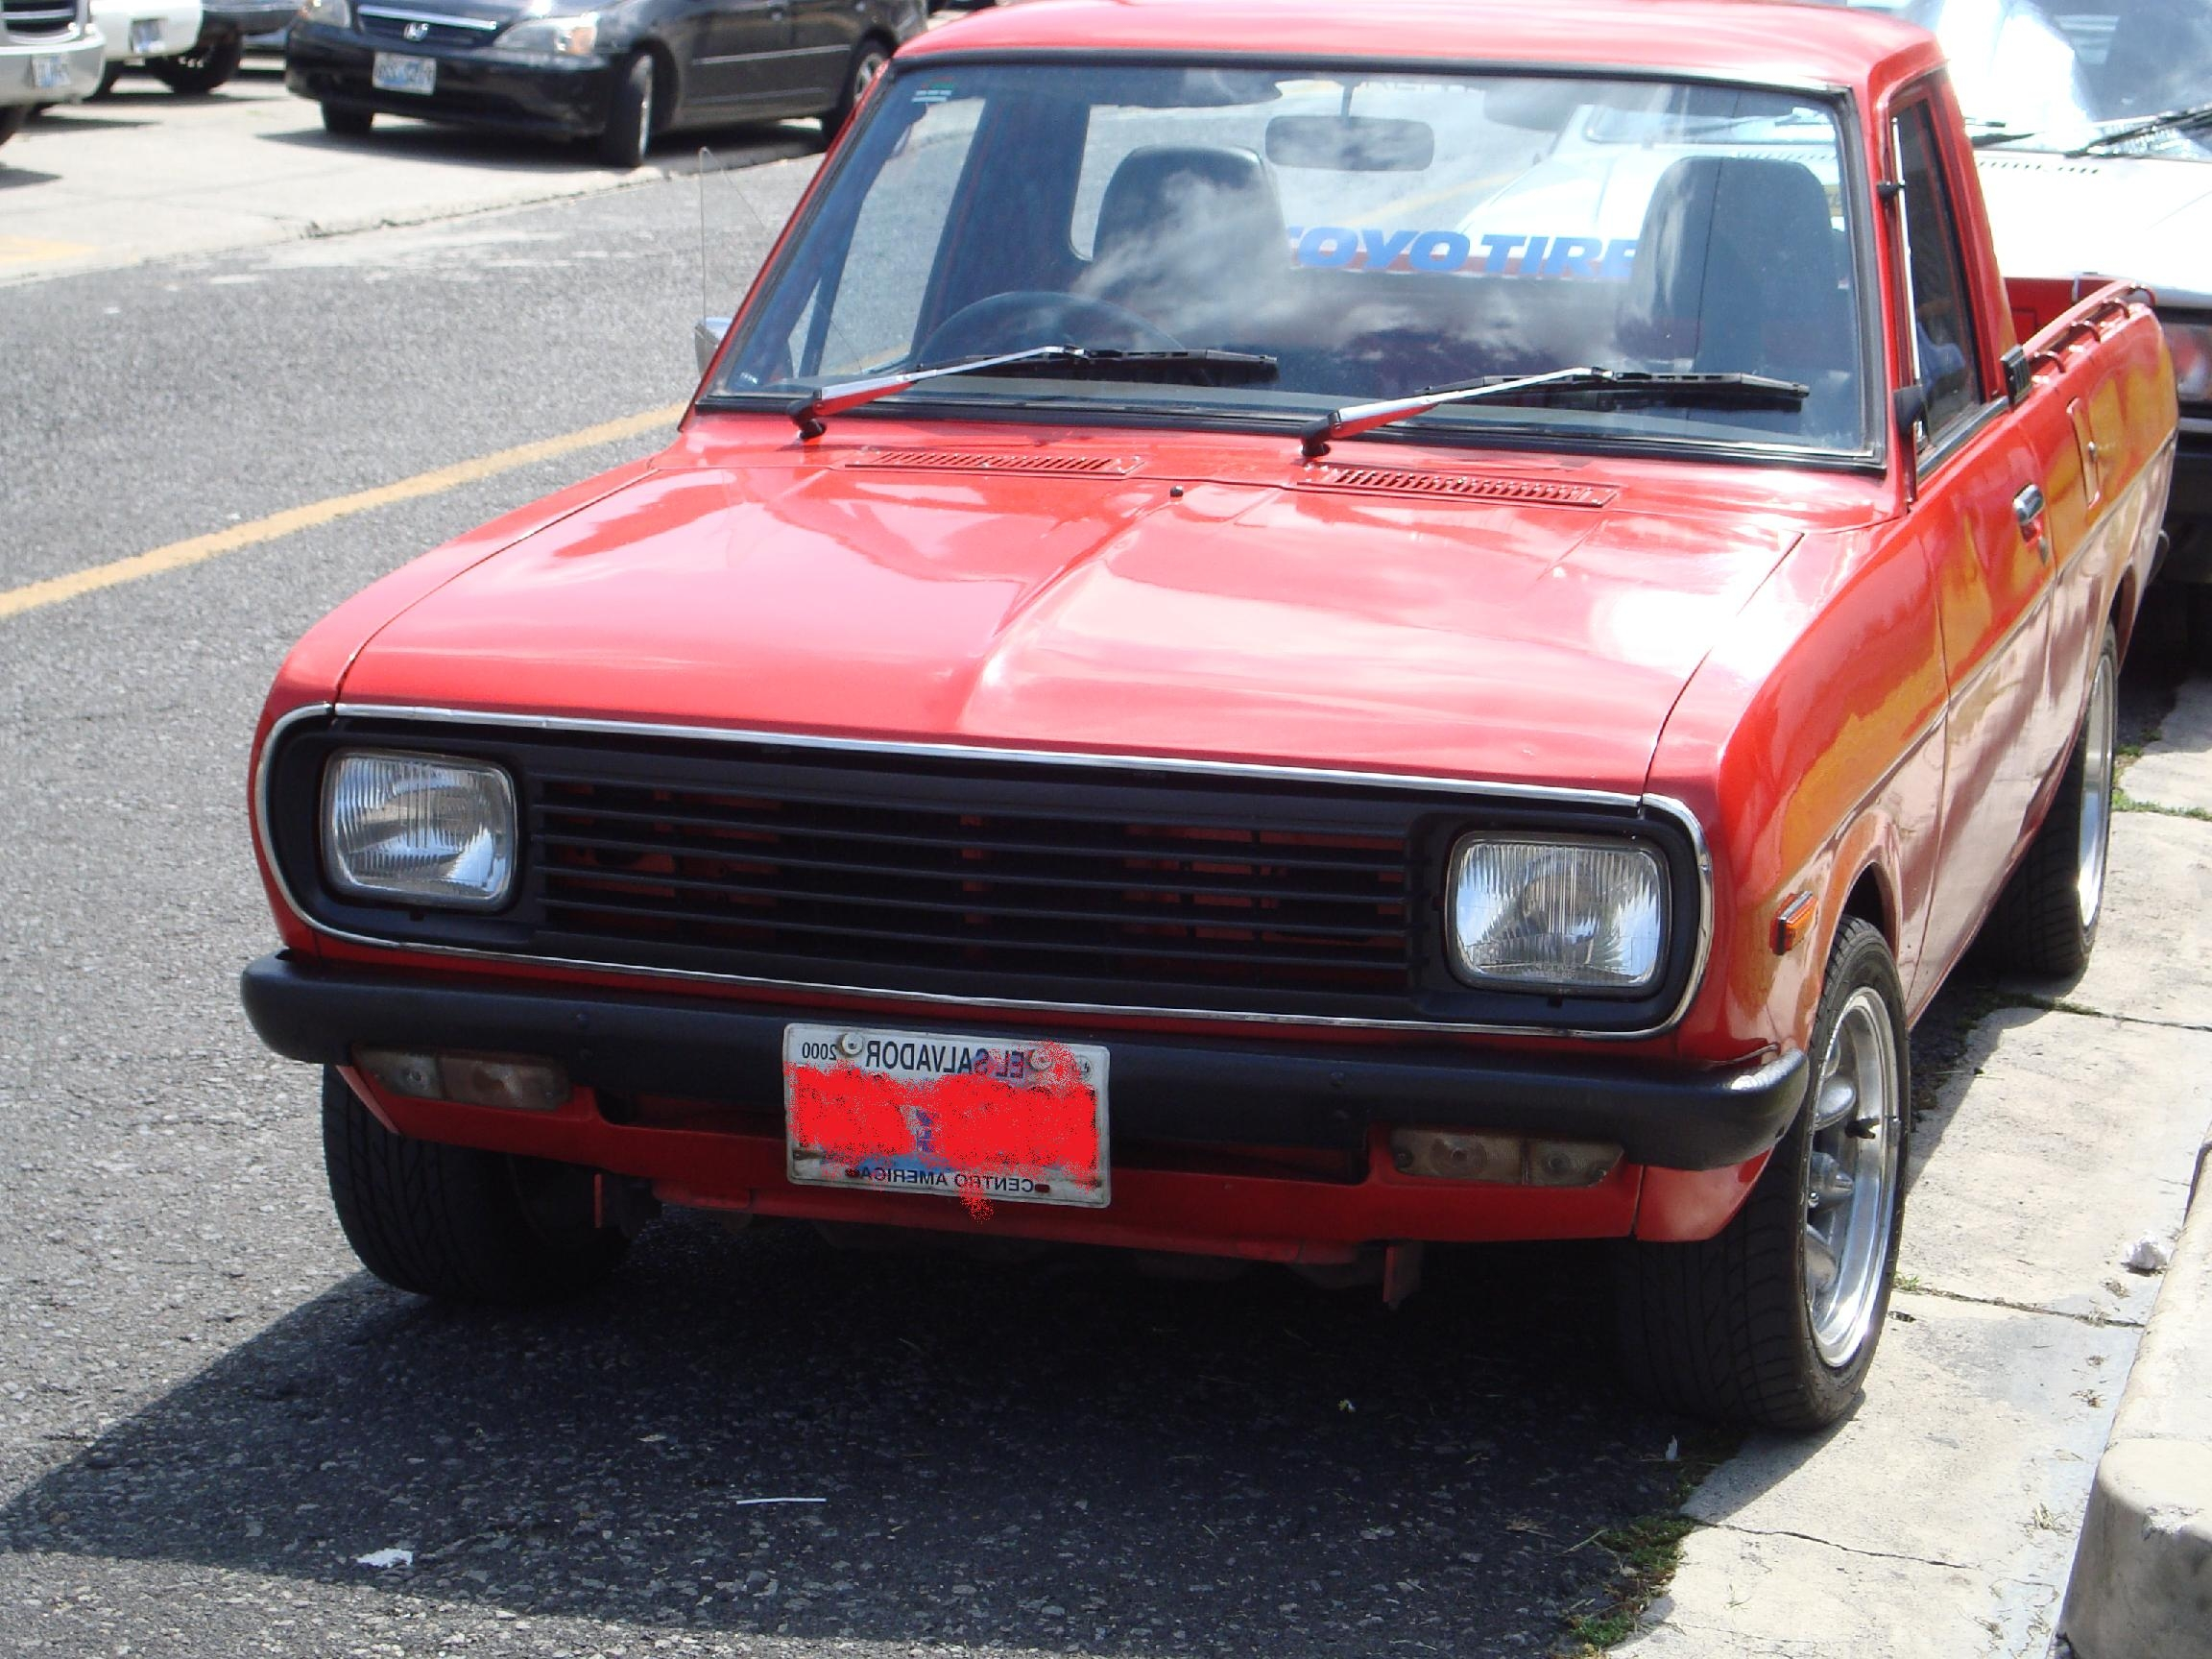 Another nissan1200 1990 Datsun 1200 post... - 14651895